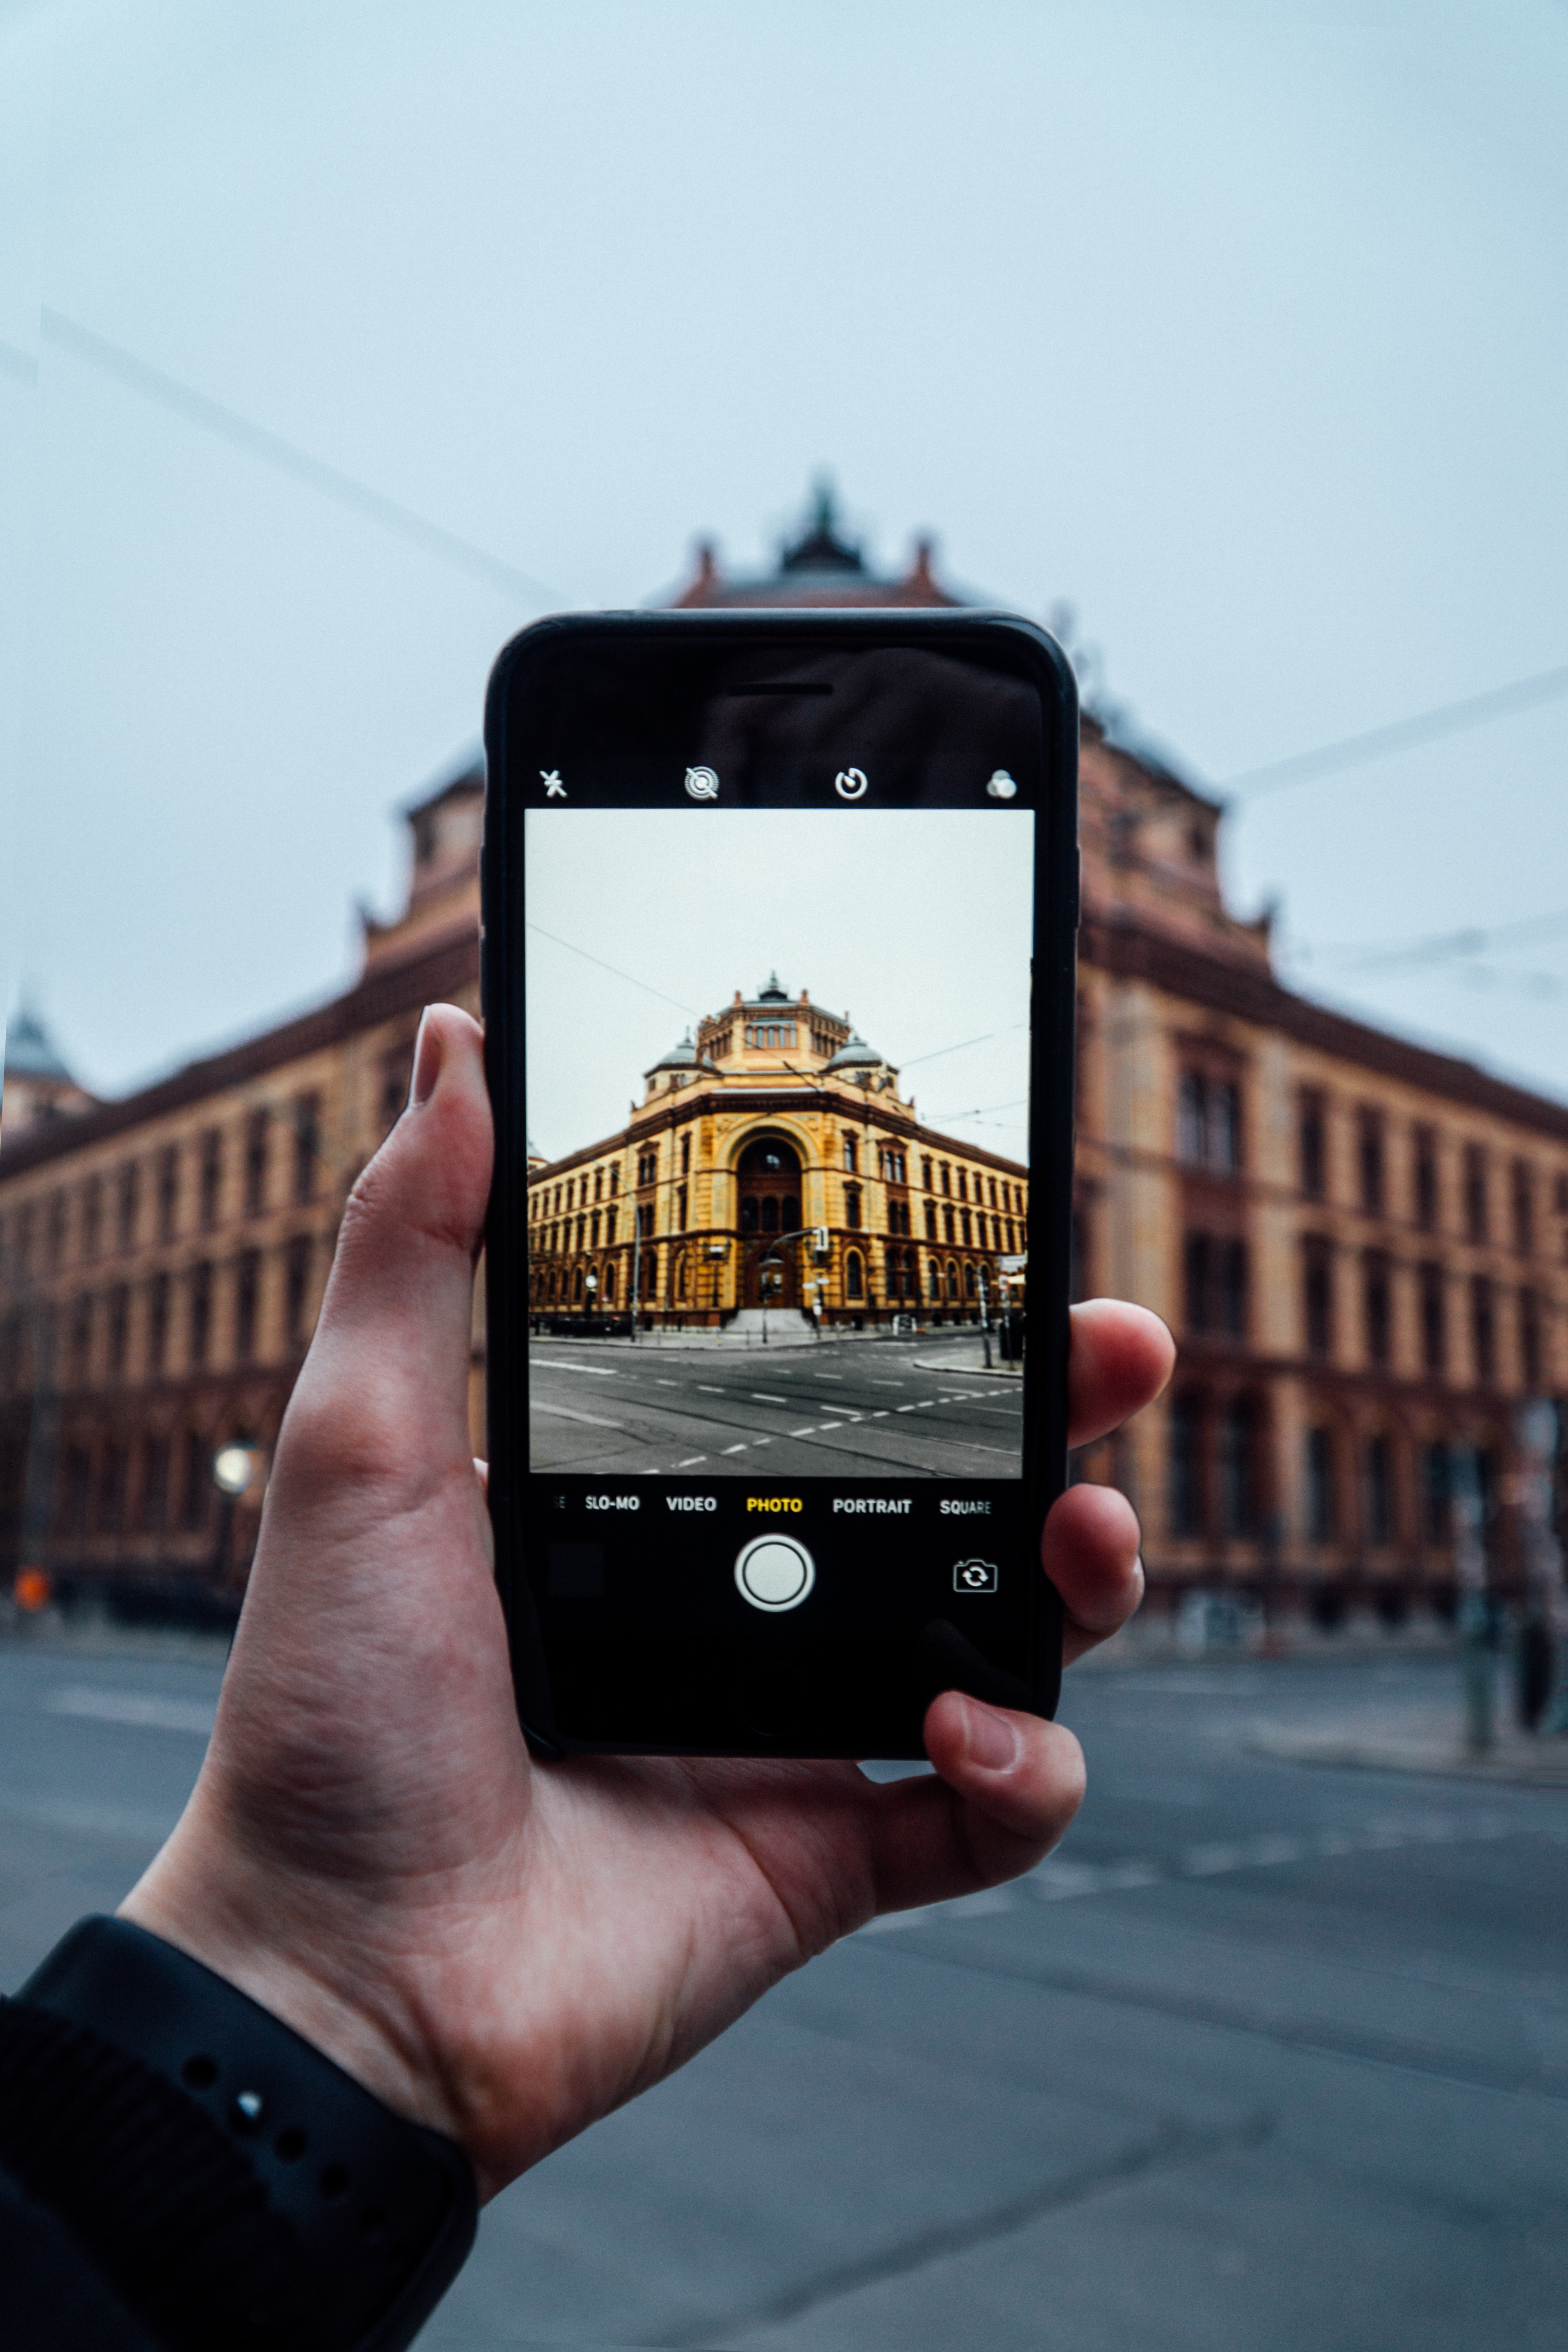 black smartphone with brown concrete building photo in screen during daytime